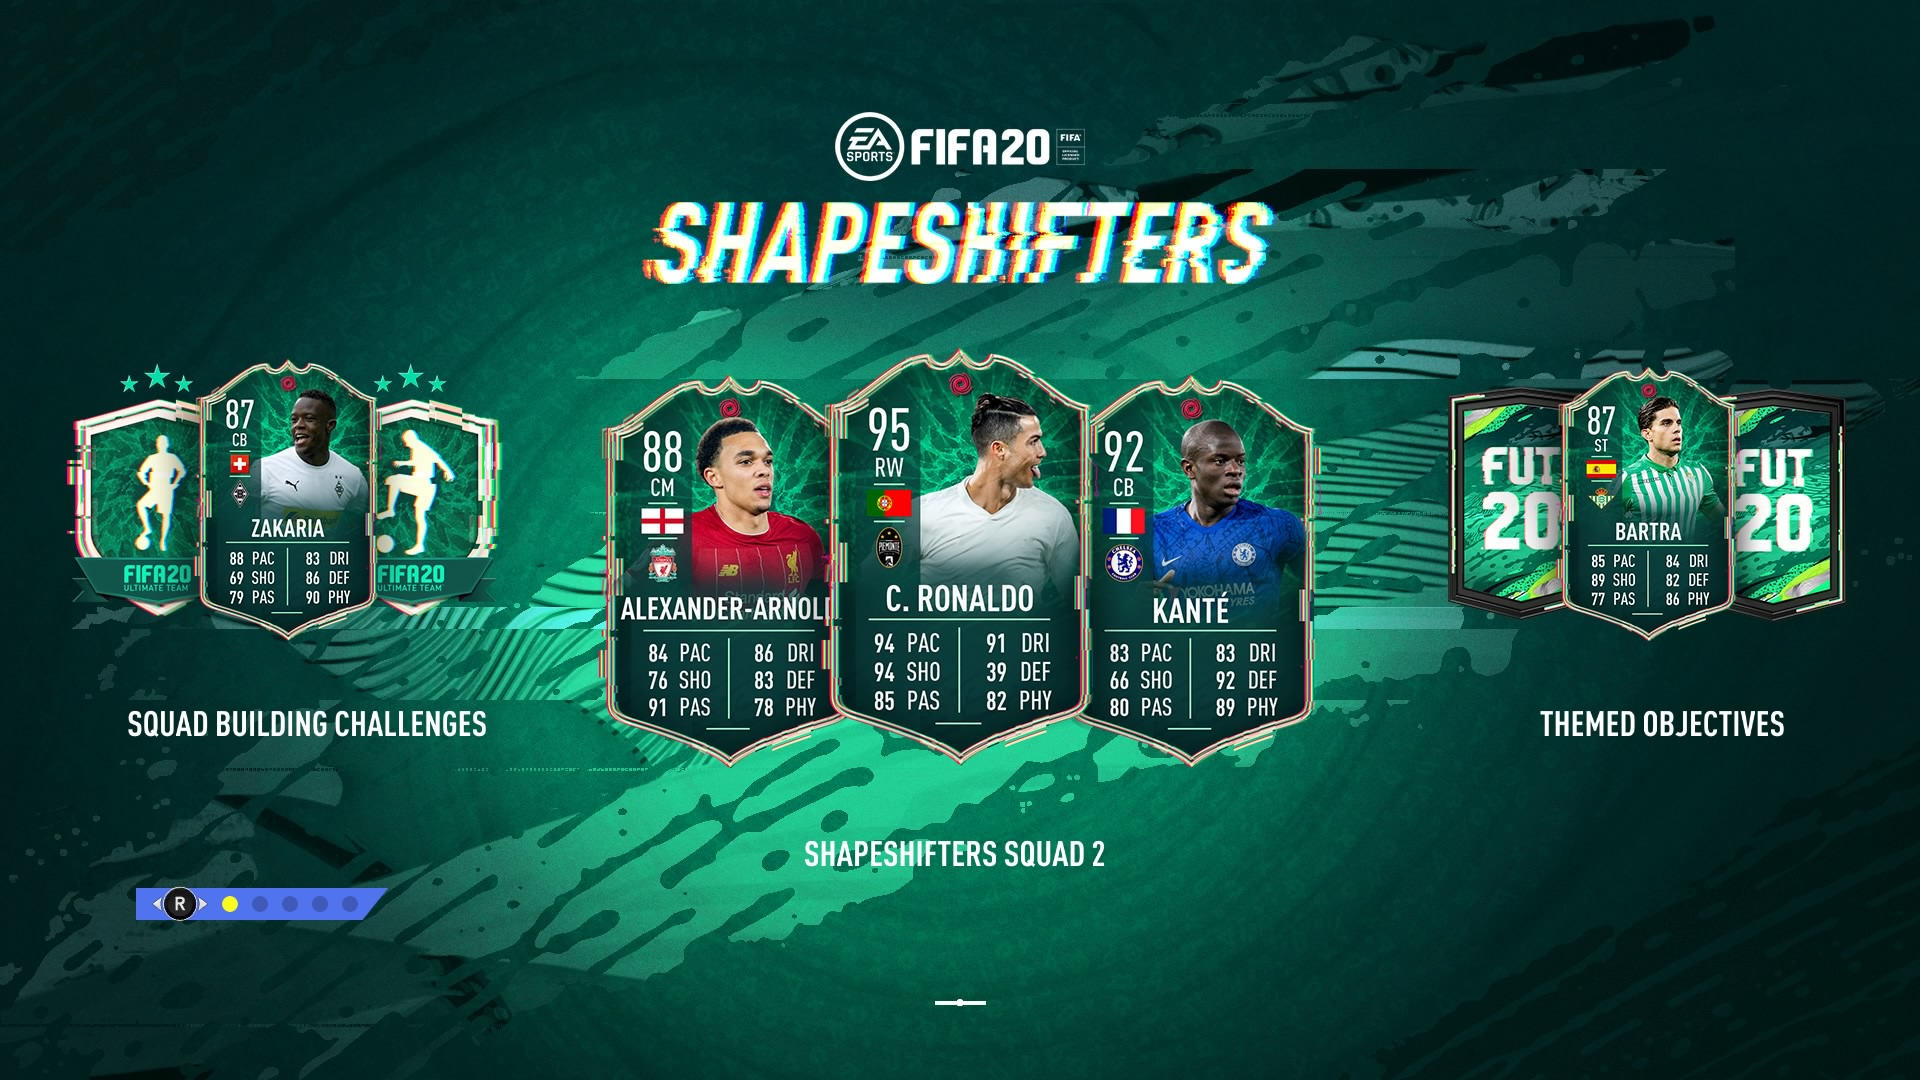 Fifa 20 Shapeshifters Guide Get Ronaldo Messi And David Luiz In New Positions Gamesradar